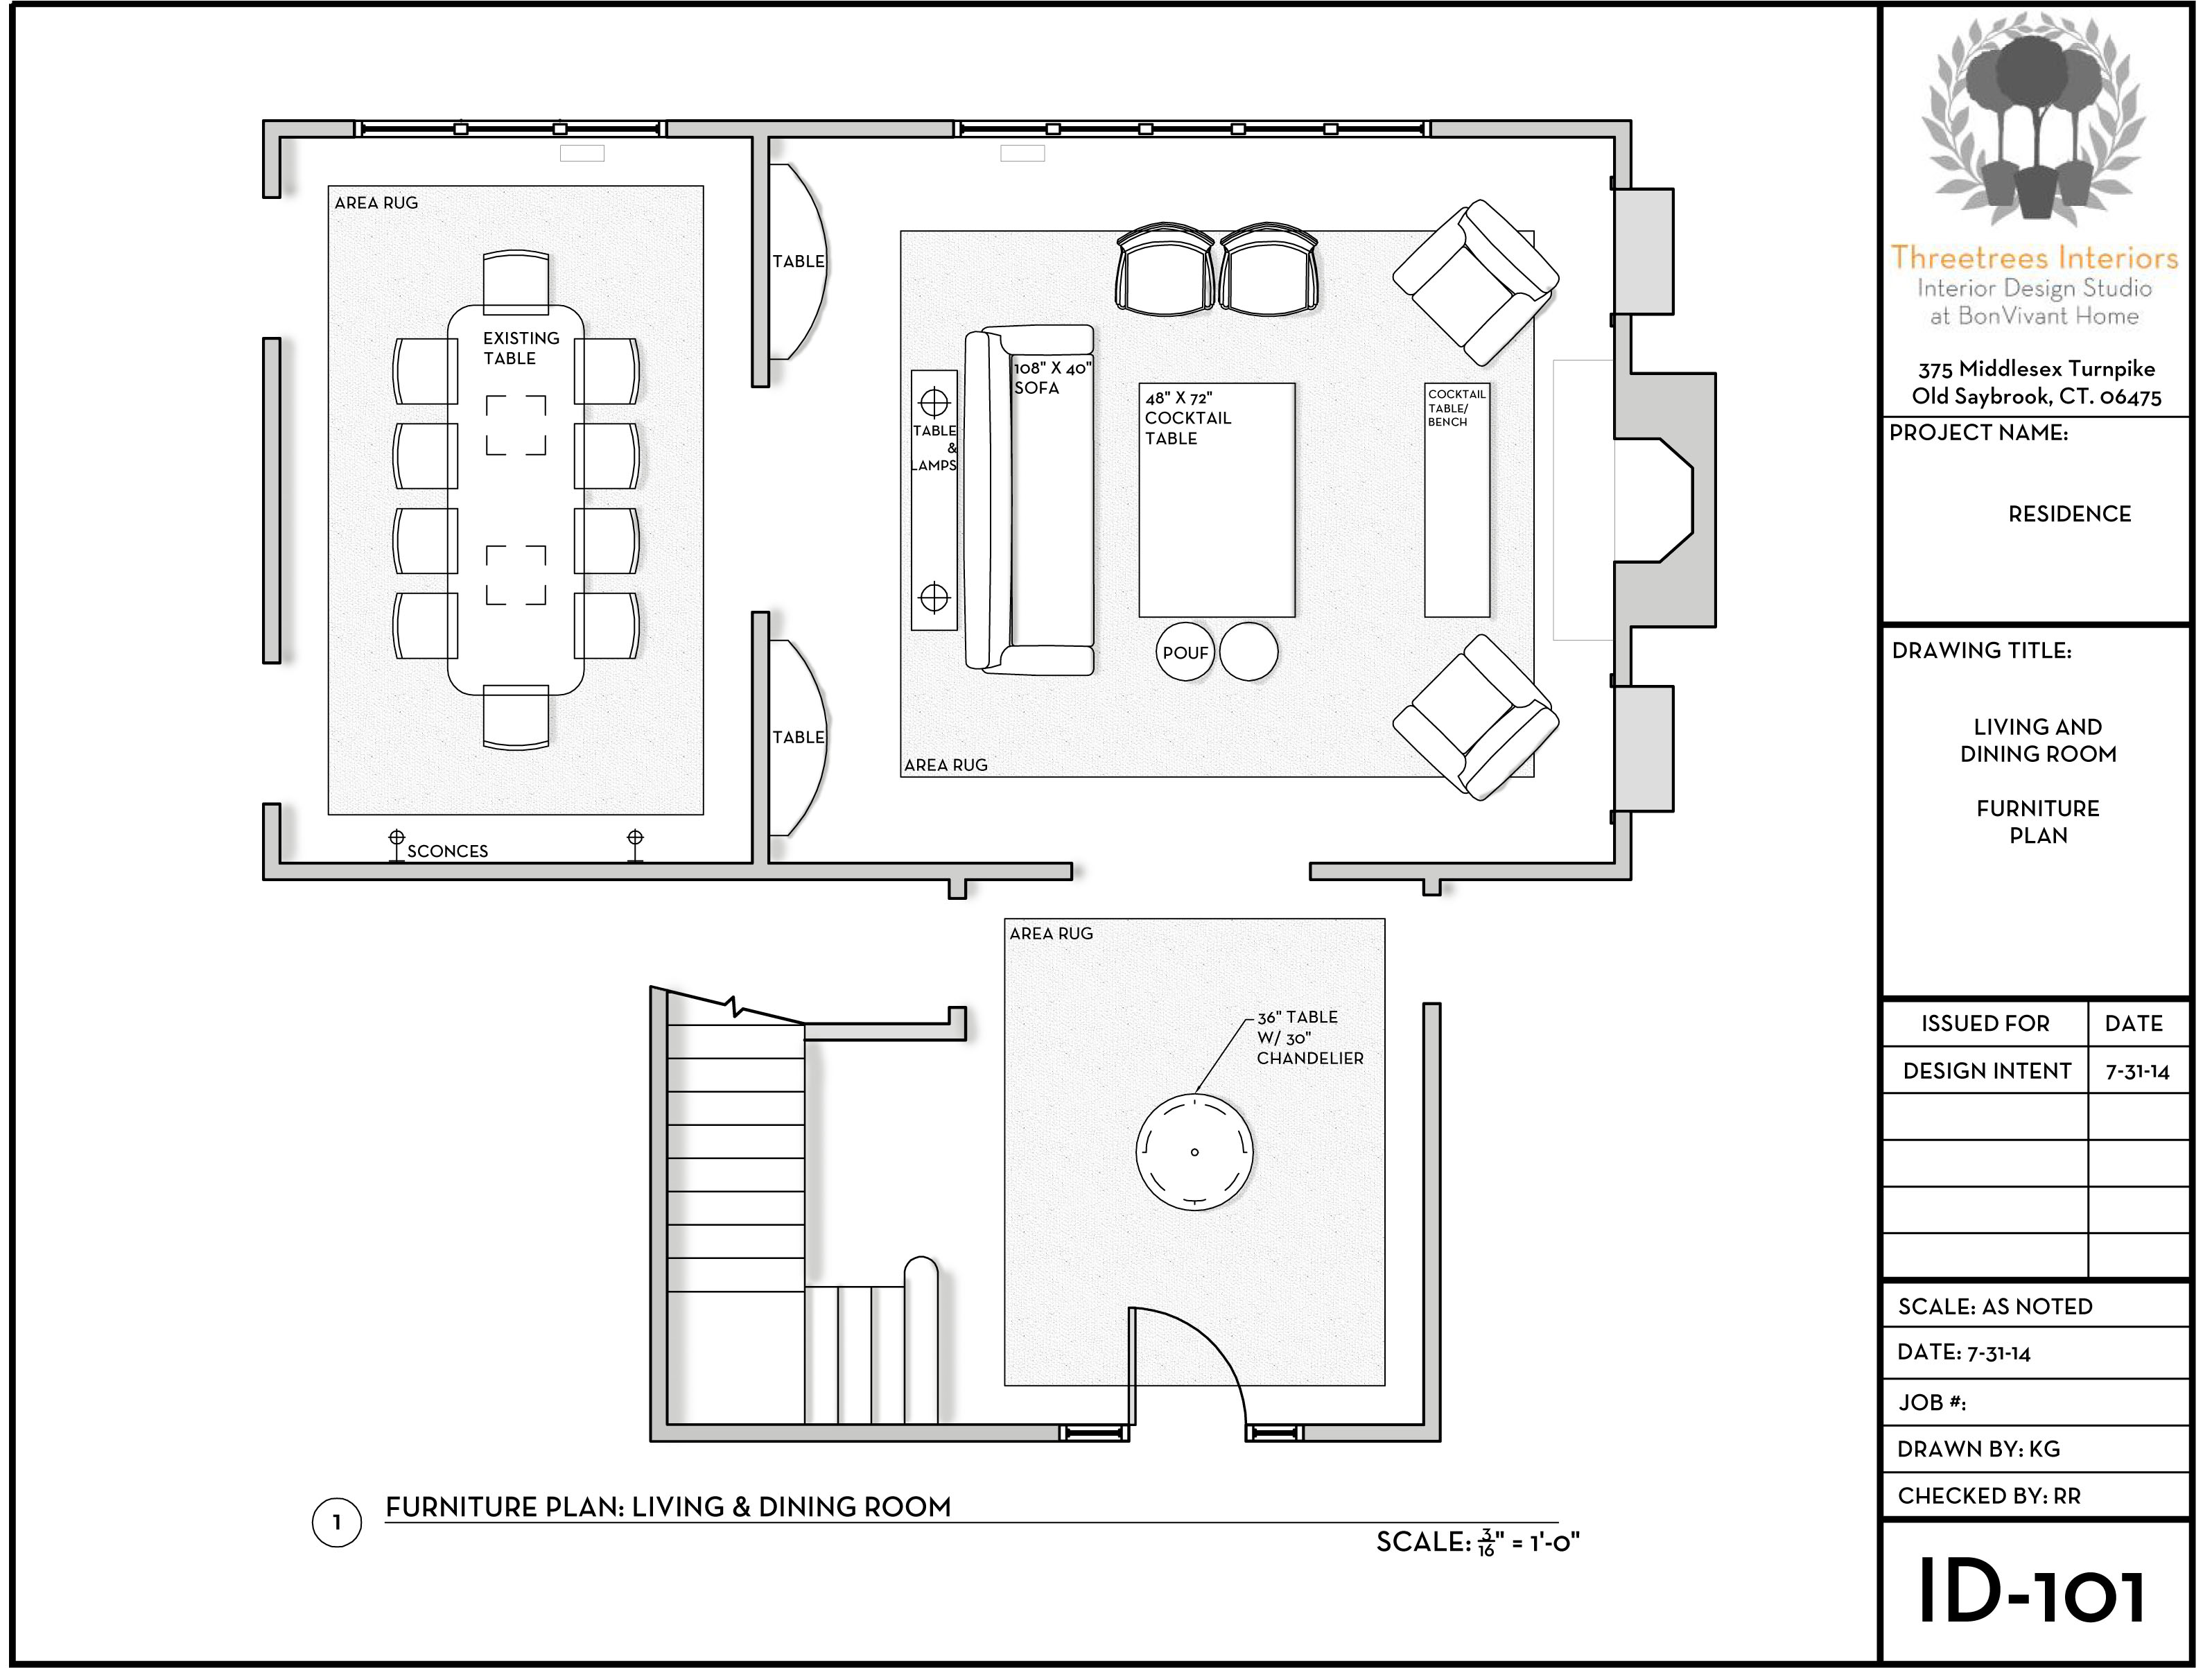 space planning and schematic design threetrees interiorsdocument schematic designs to create a visual for design intent [ 3191 x 2406 Pixel ]